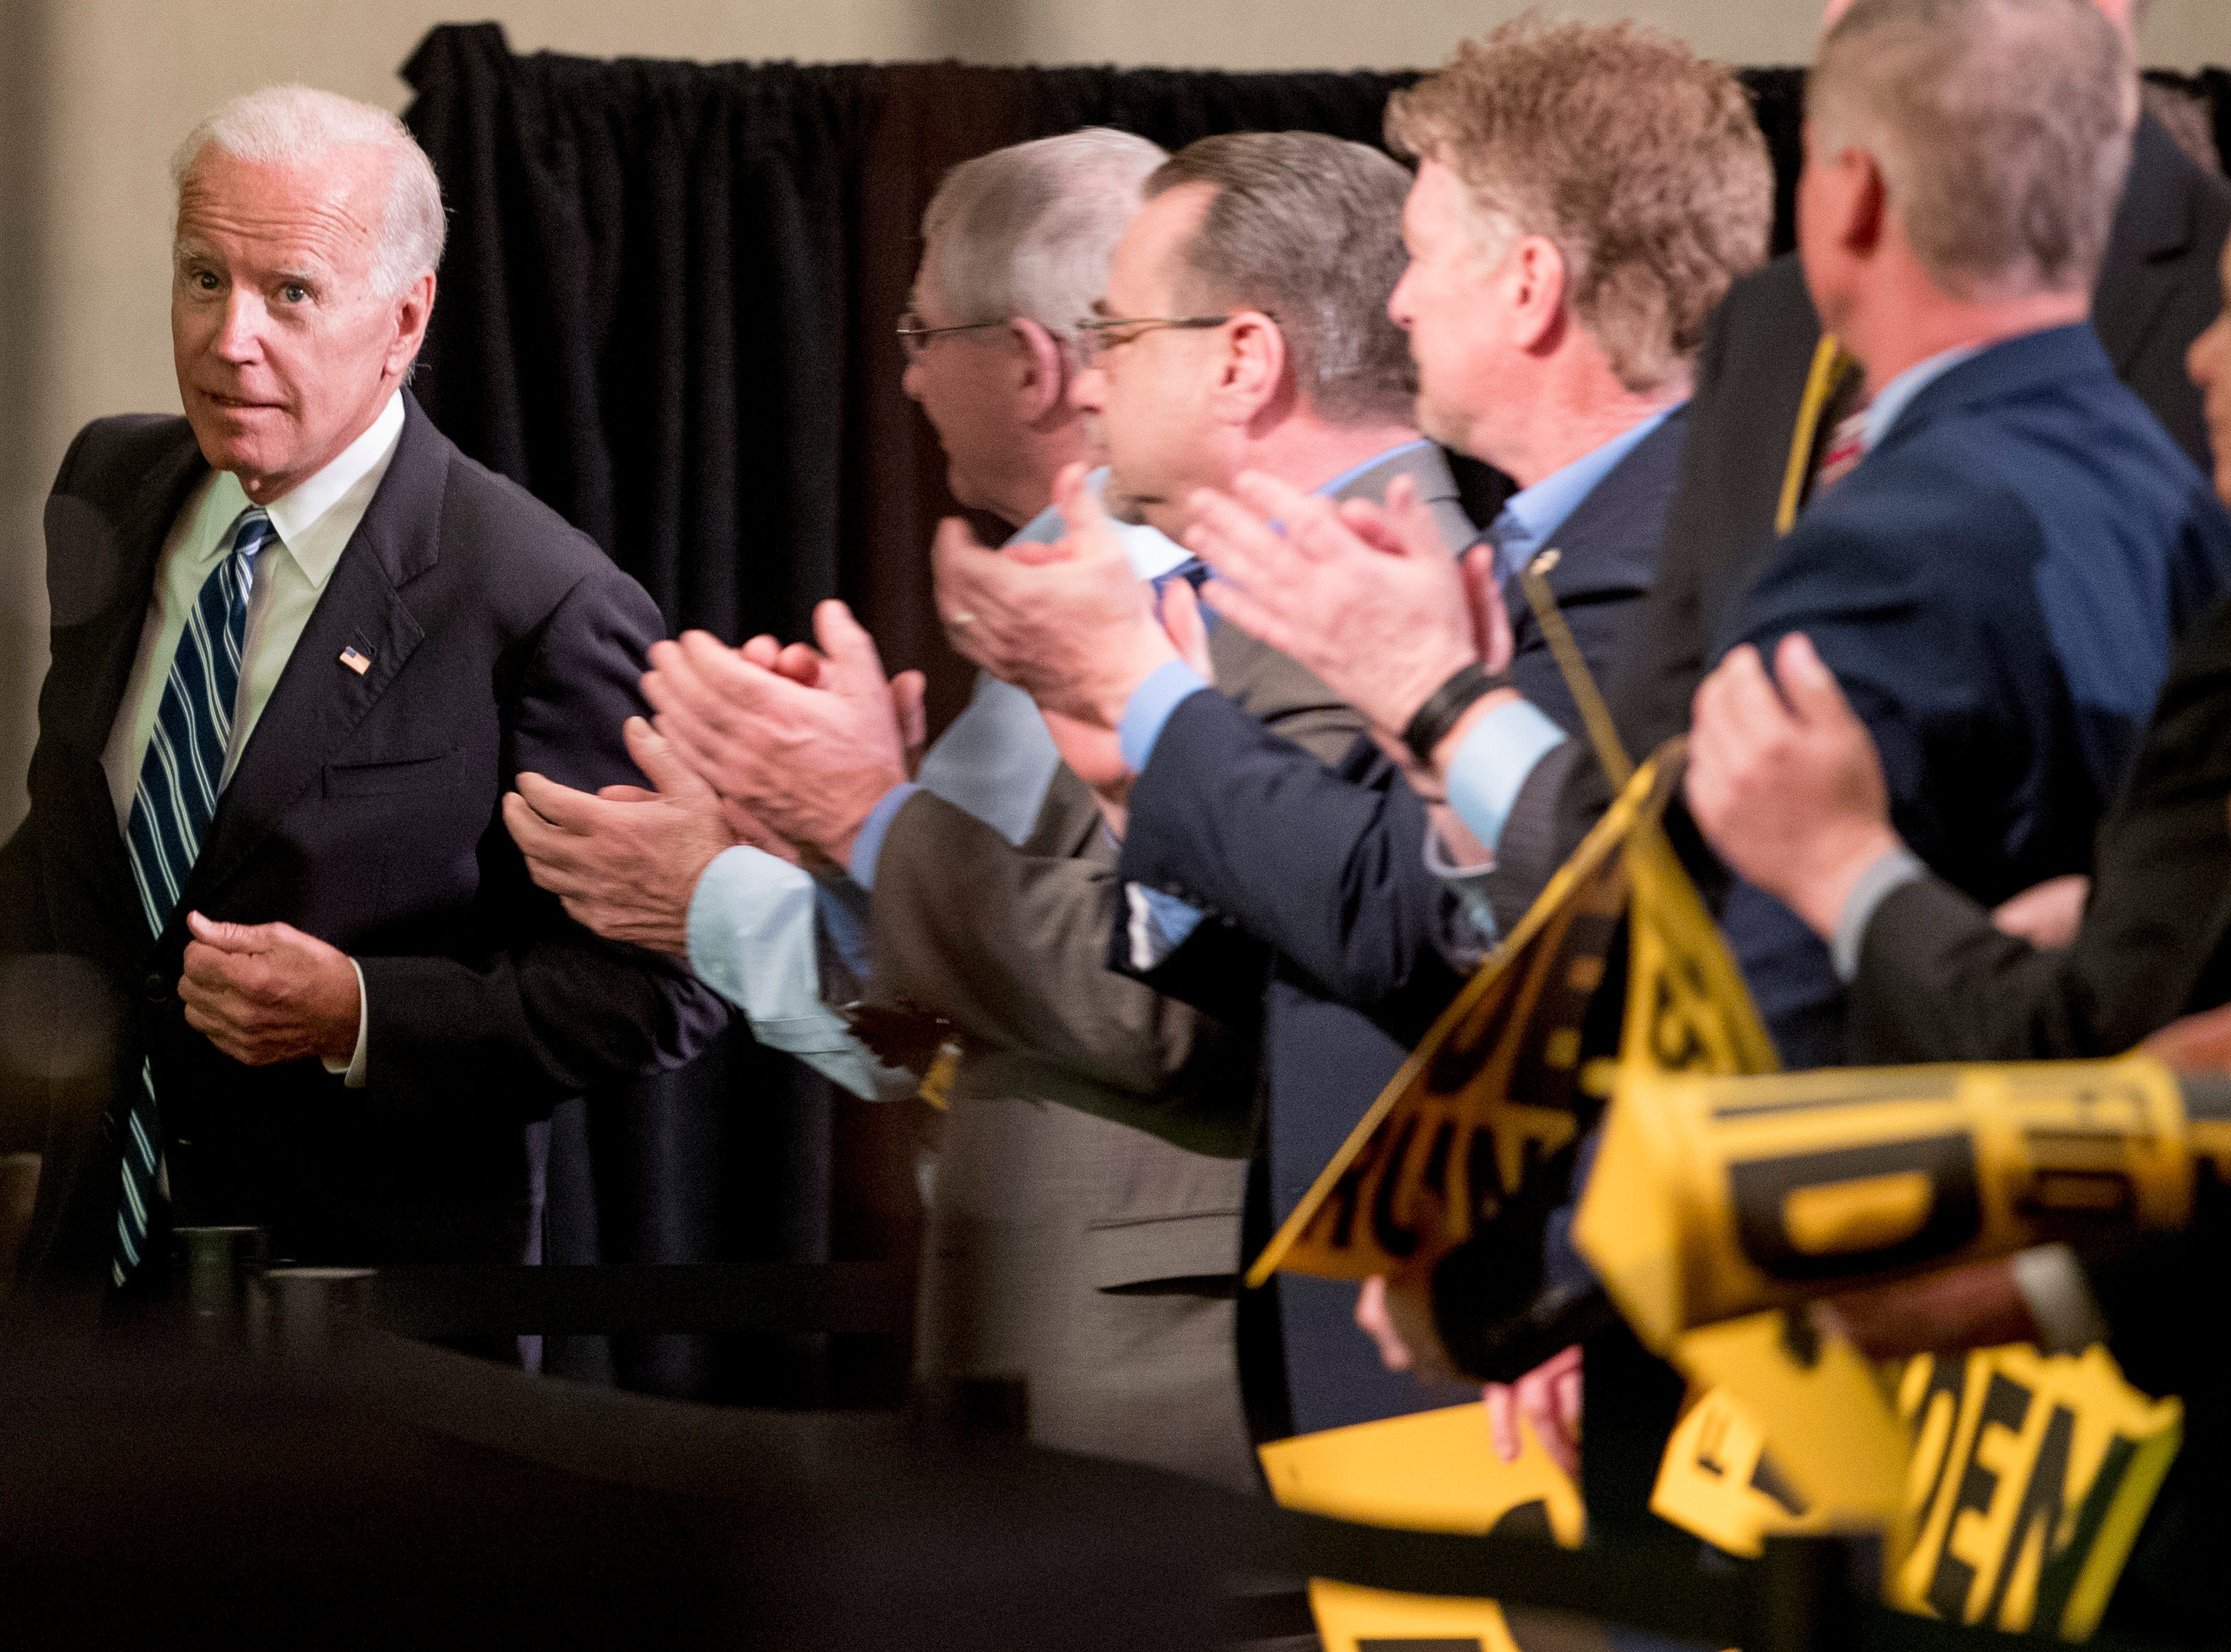 Former Vice President Joe Biden takes the stage to speak to the International Association of Firefighters at the Hyatt Regency on Capitol Hill in Washington, Tuesday, March 12, 2019, amid growing expectations he'll soon announce he's running for president. (AP Photo/Andrew Harnik)